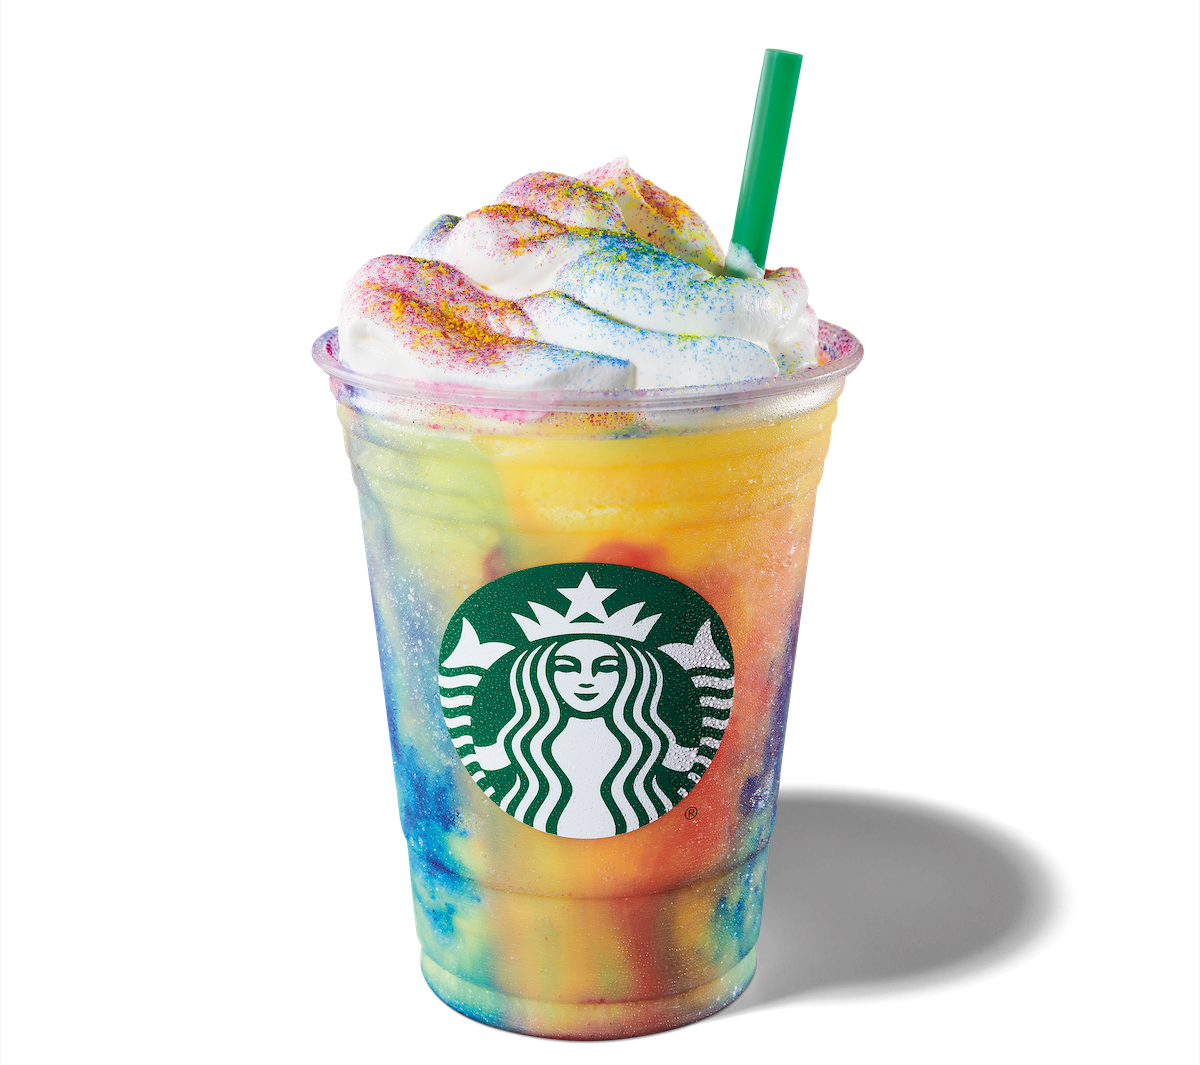 Starbucks Launches New Tie Dye Frappuccino R Blended